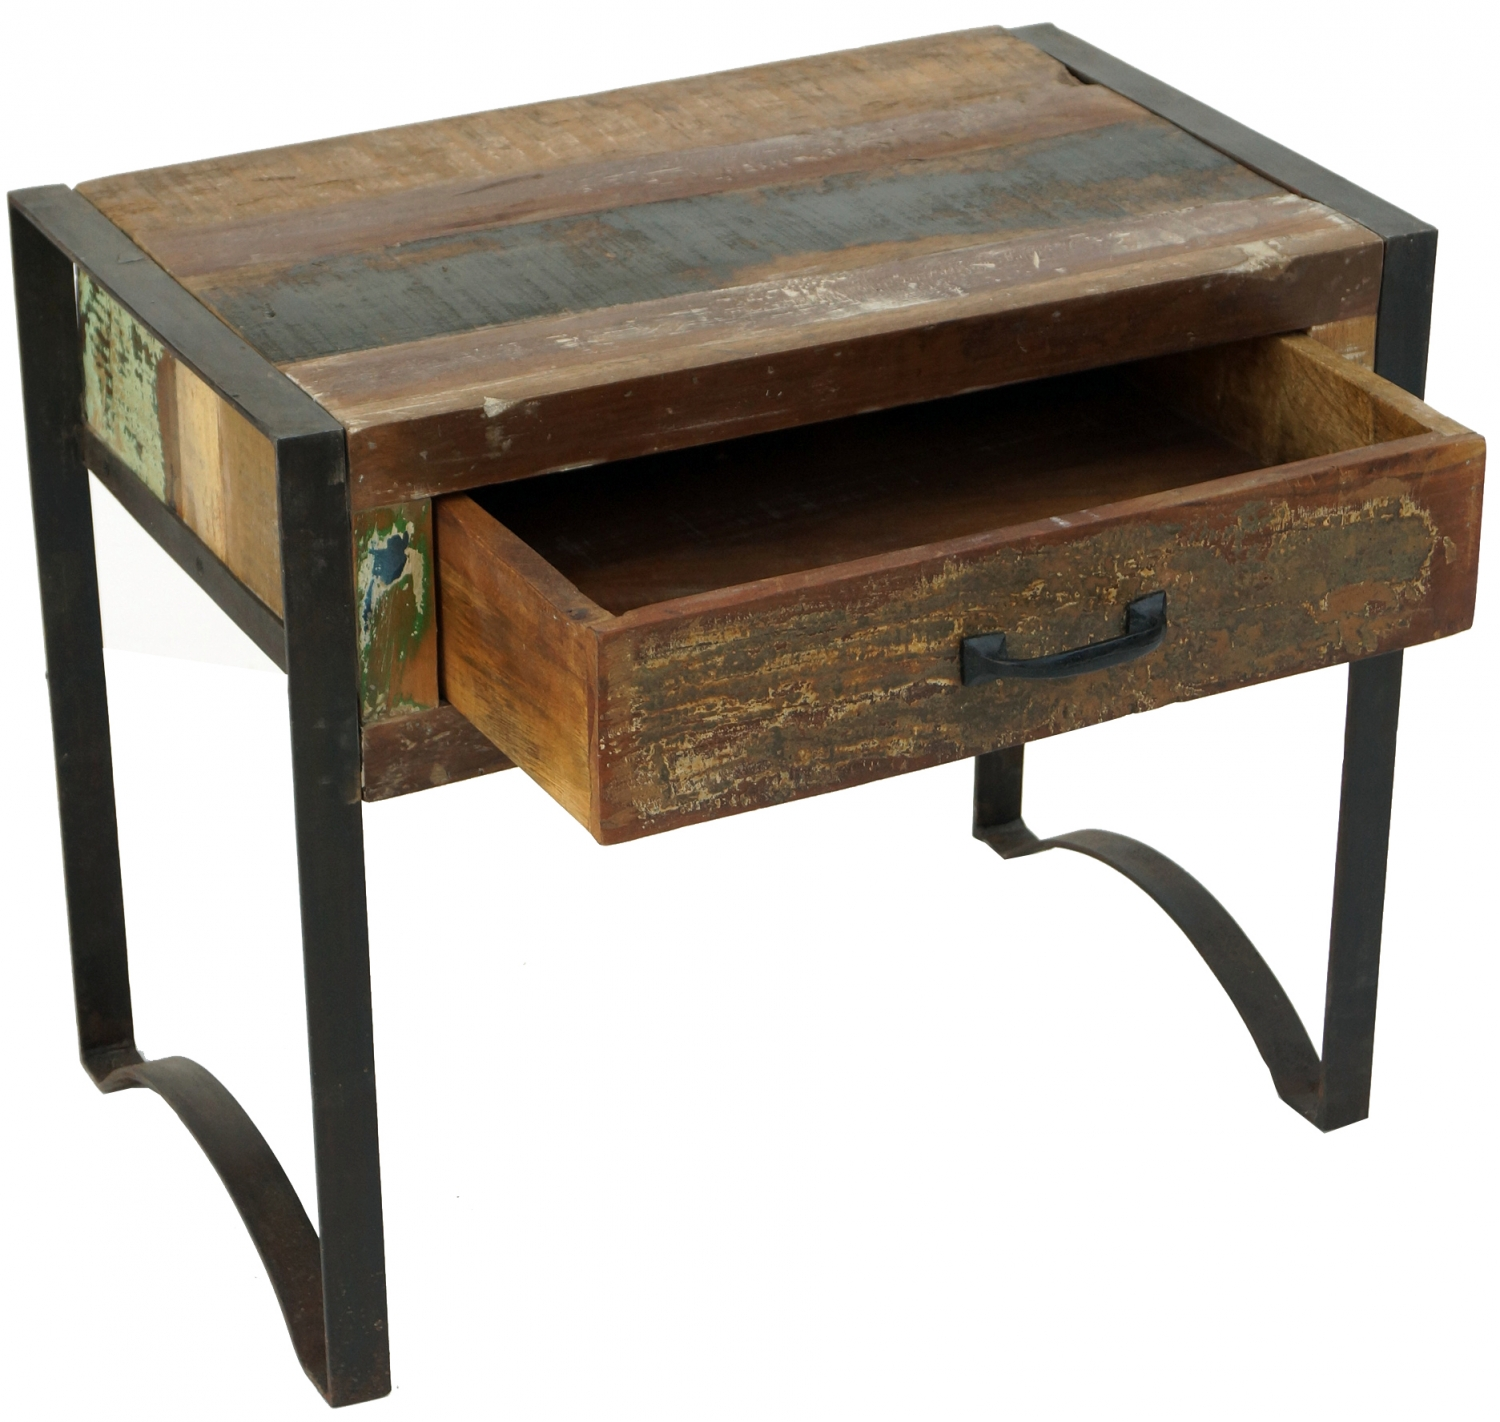 - Vintage Side Table, Bedside Table In Metal And Recycled Wood - Model 2 -  50x60x38 Cm